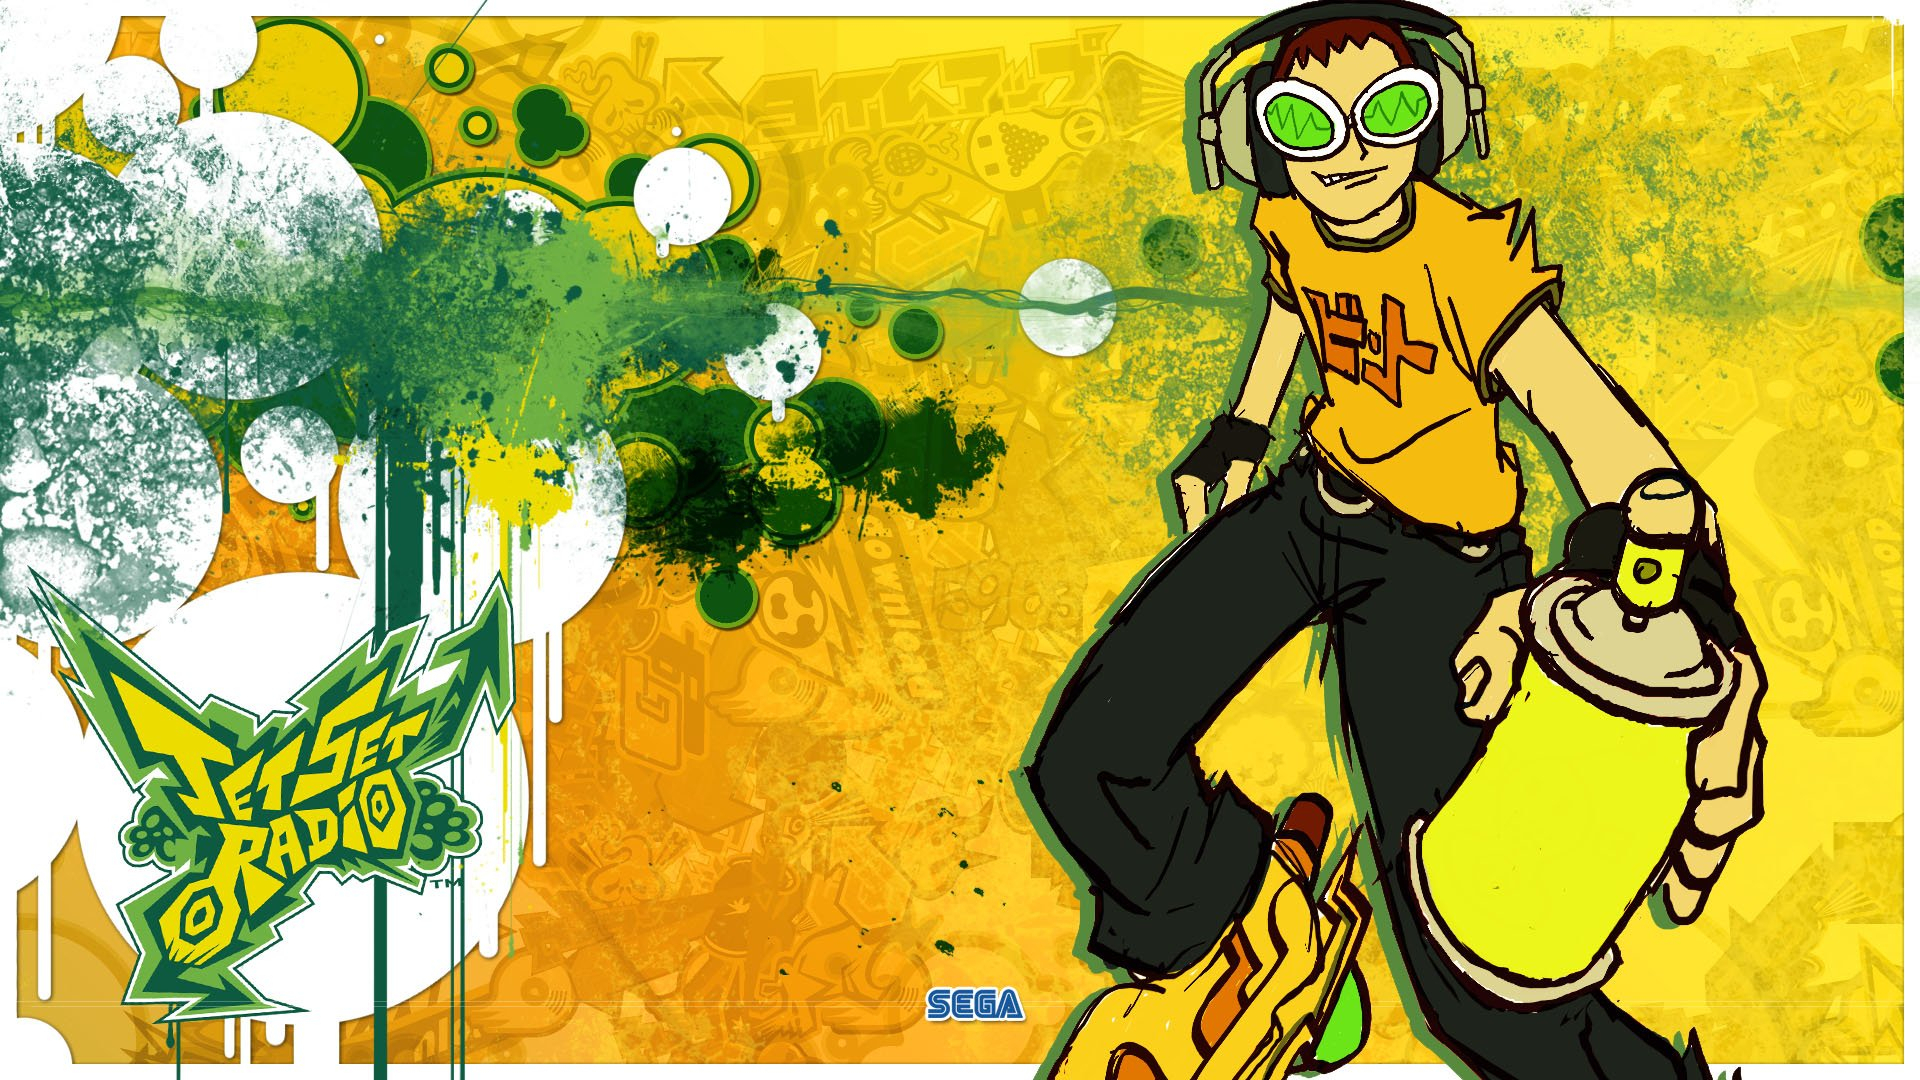 jet set radio hd wallpaper | hintergrund | 1920x1080 | id:492168